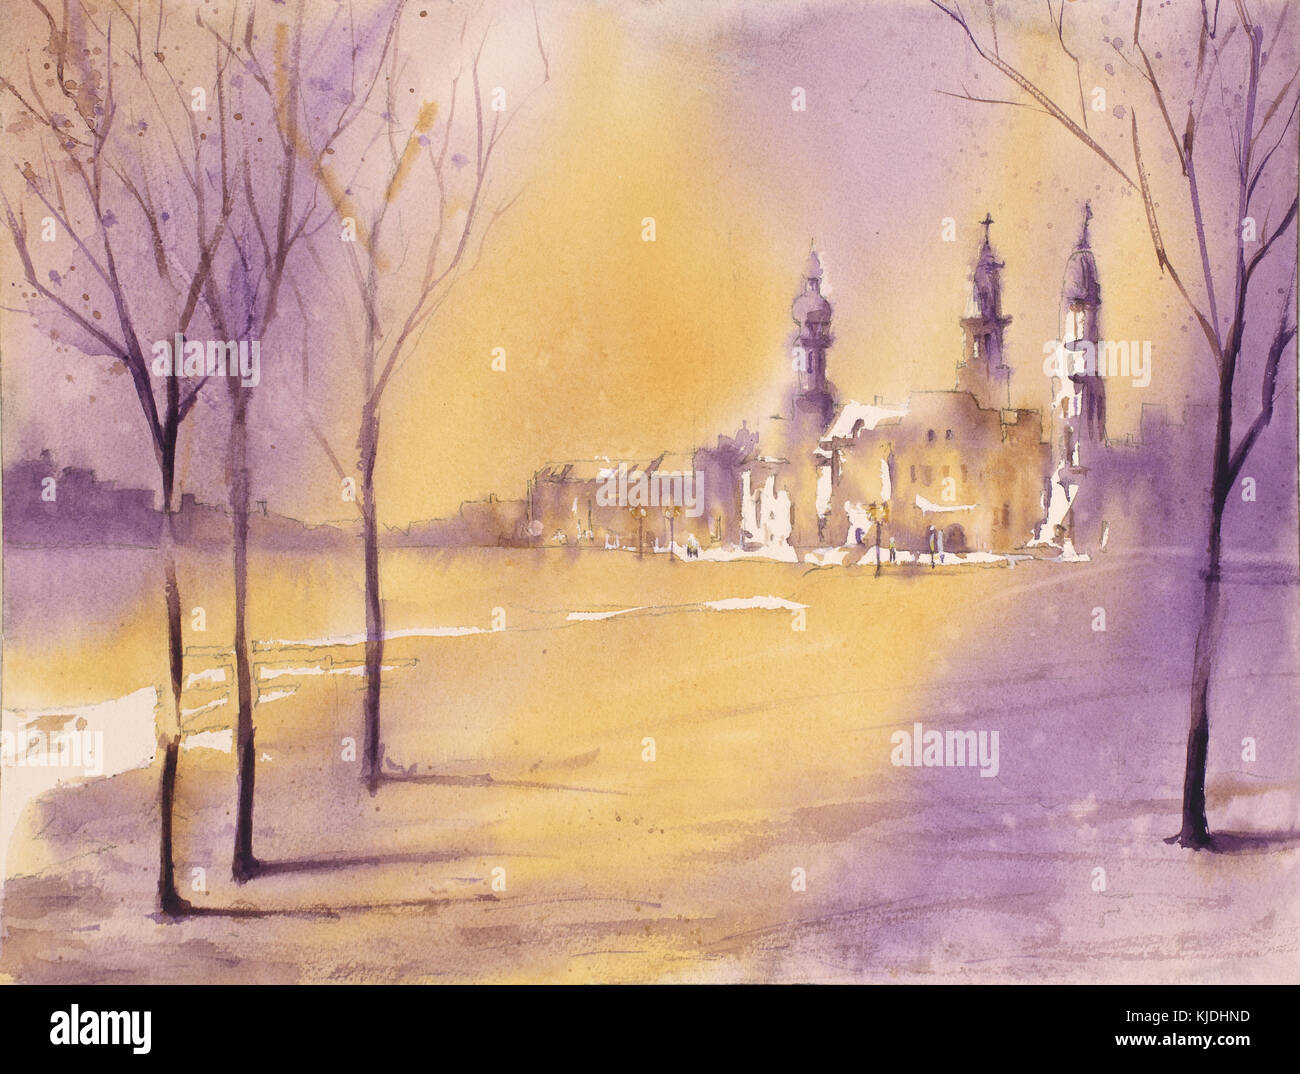 Imagined cityscape with church steeples in distance.  Watercolor painting.  Original watercolor. Stock Photo